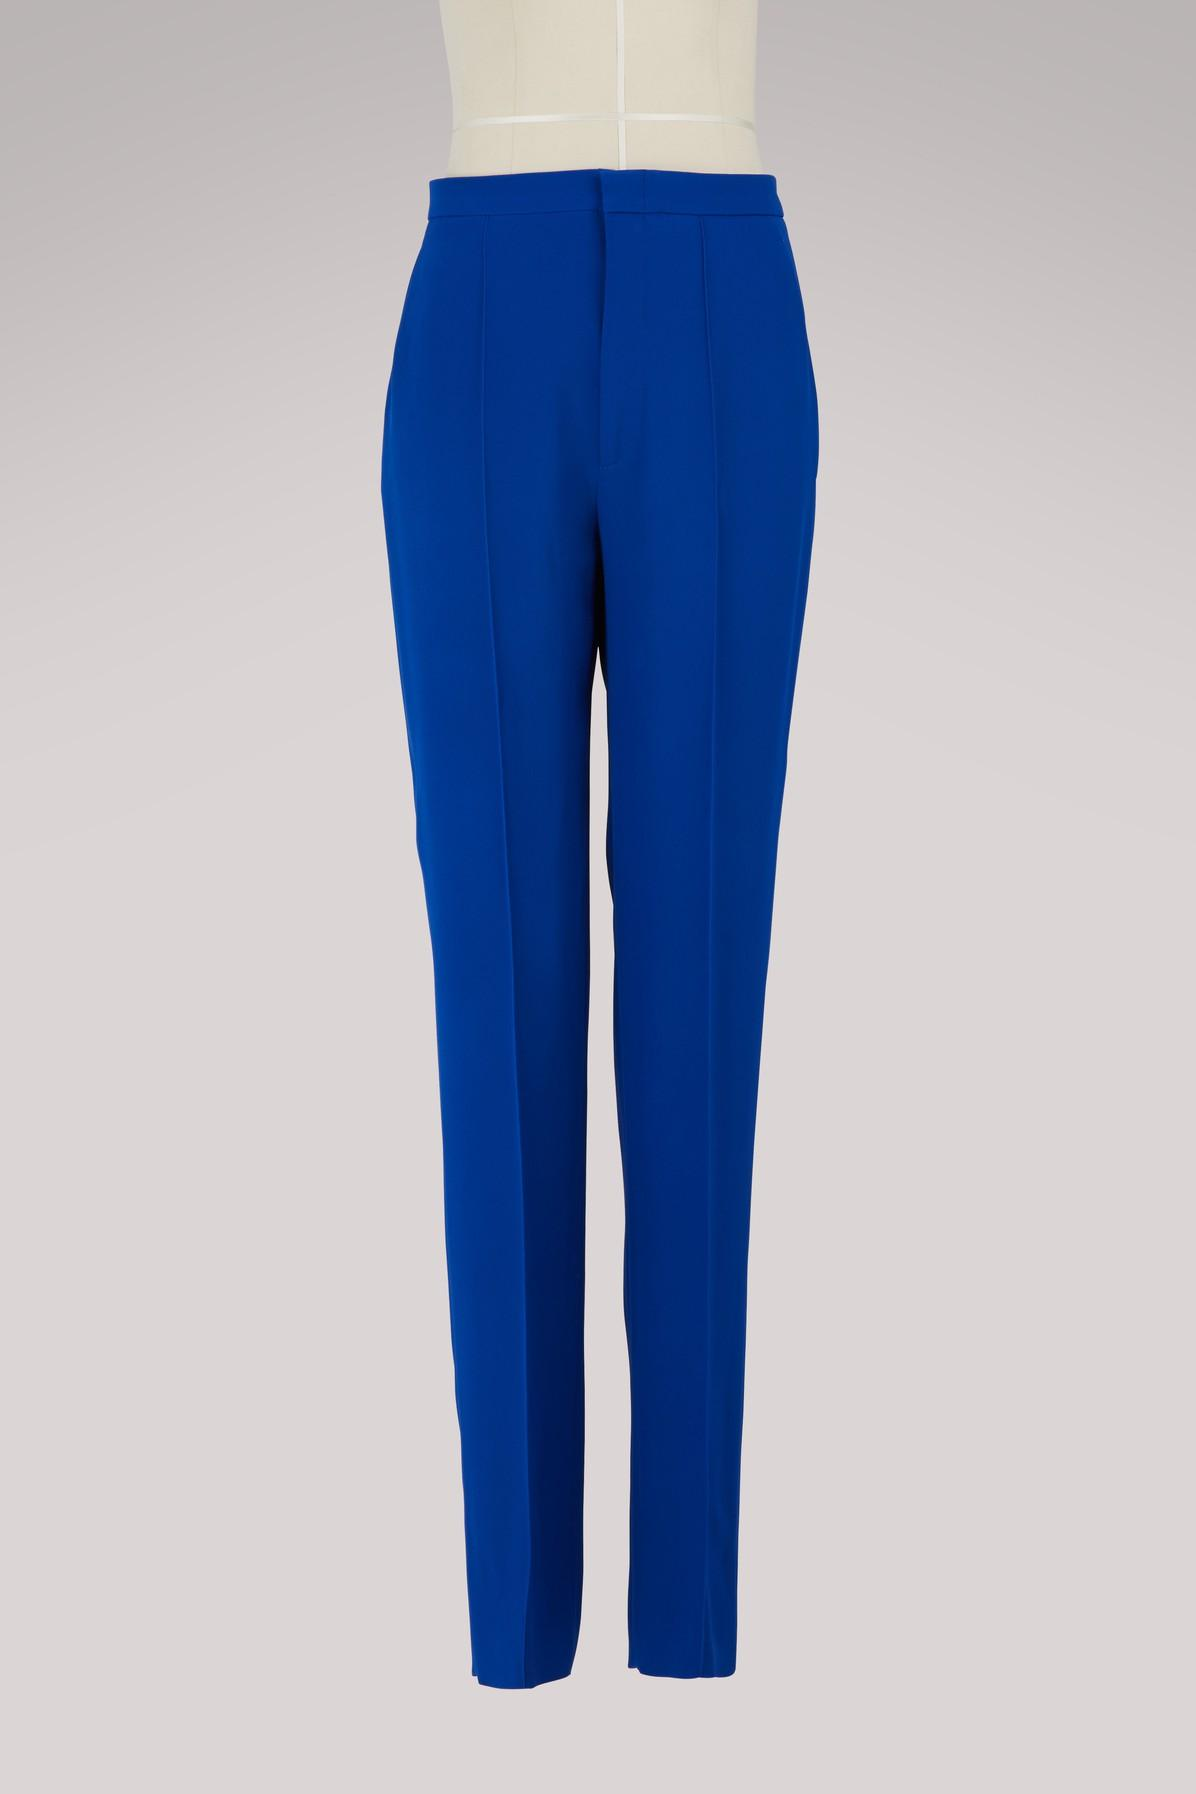 Gucci Stretch Pants In Cobalto